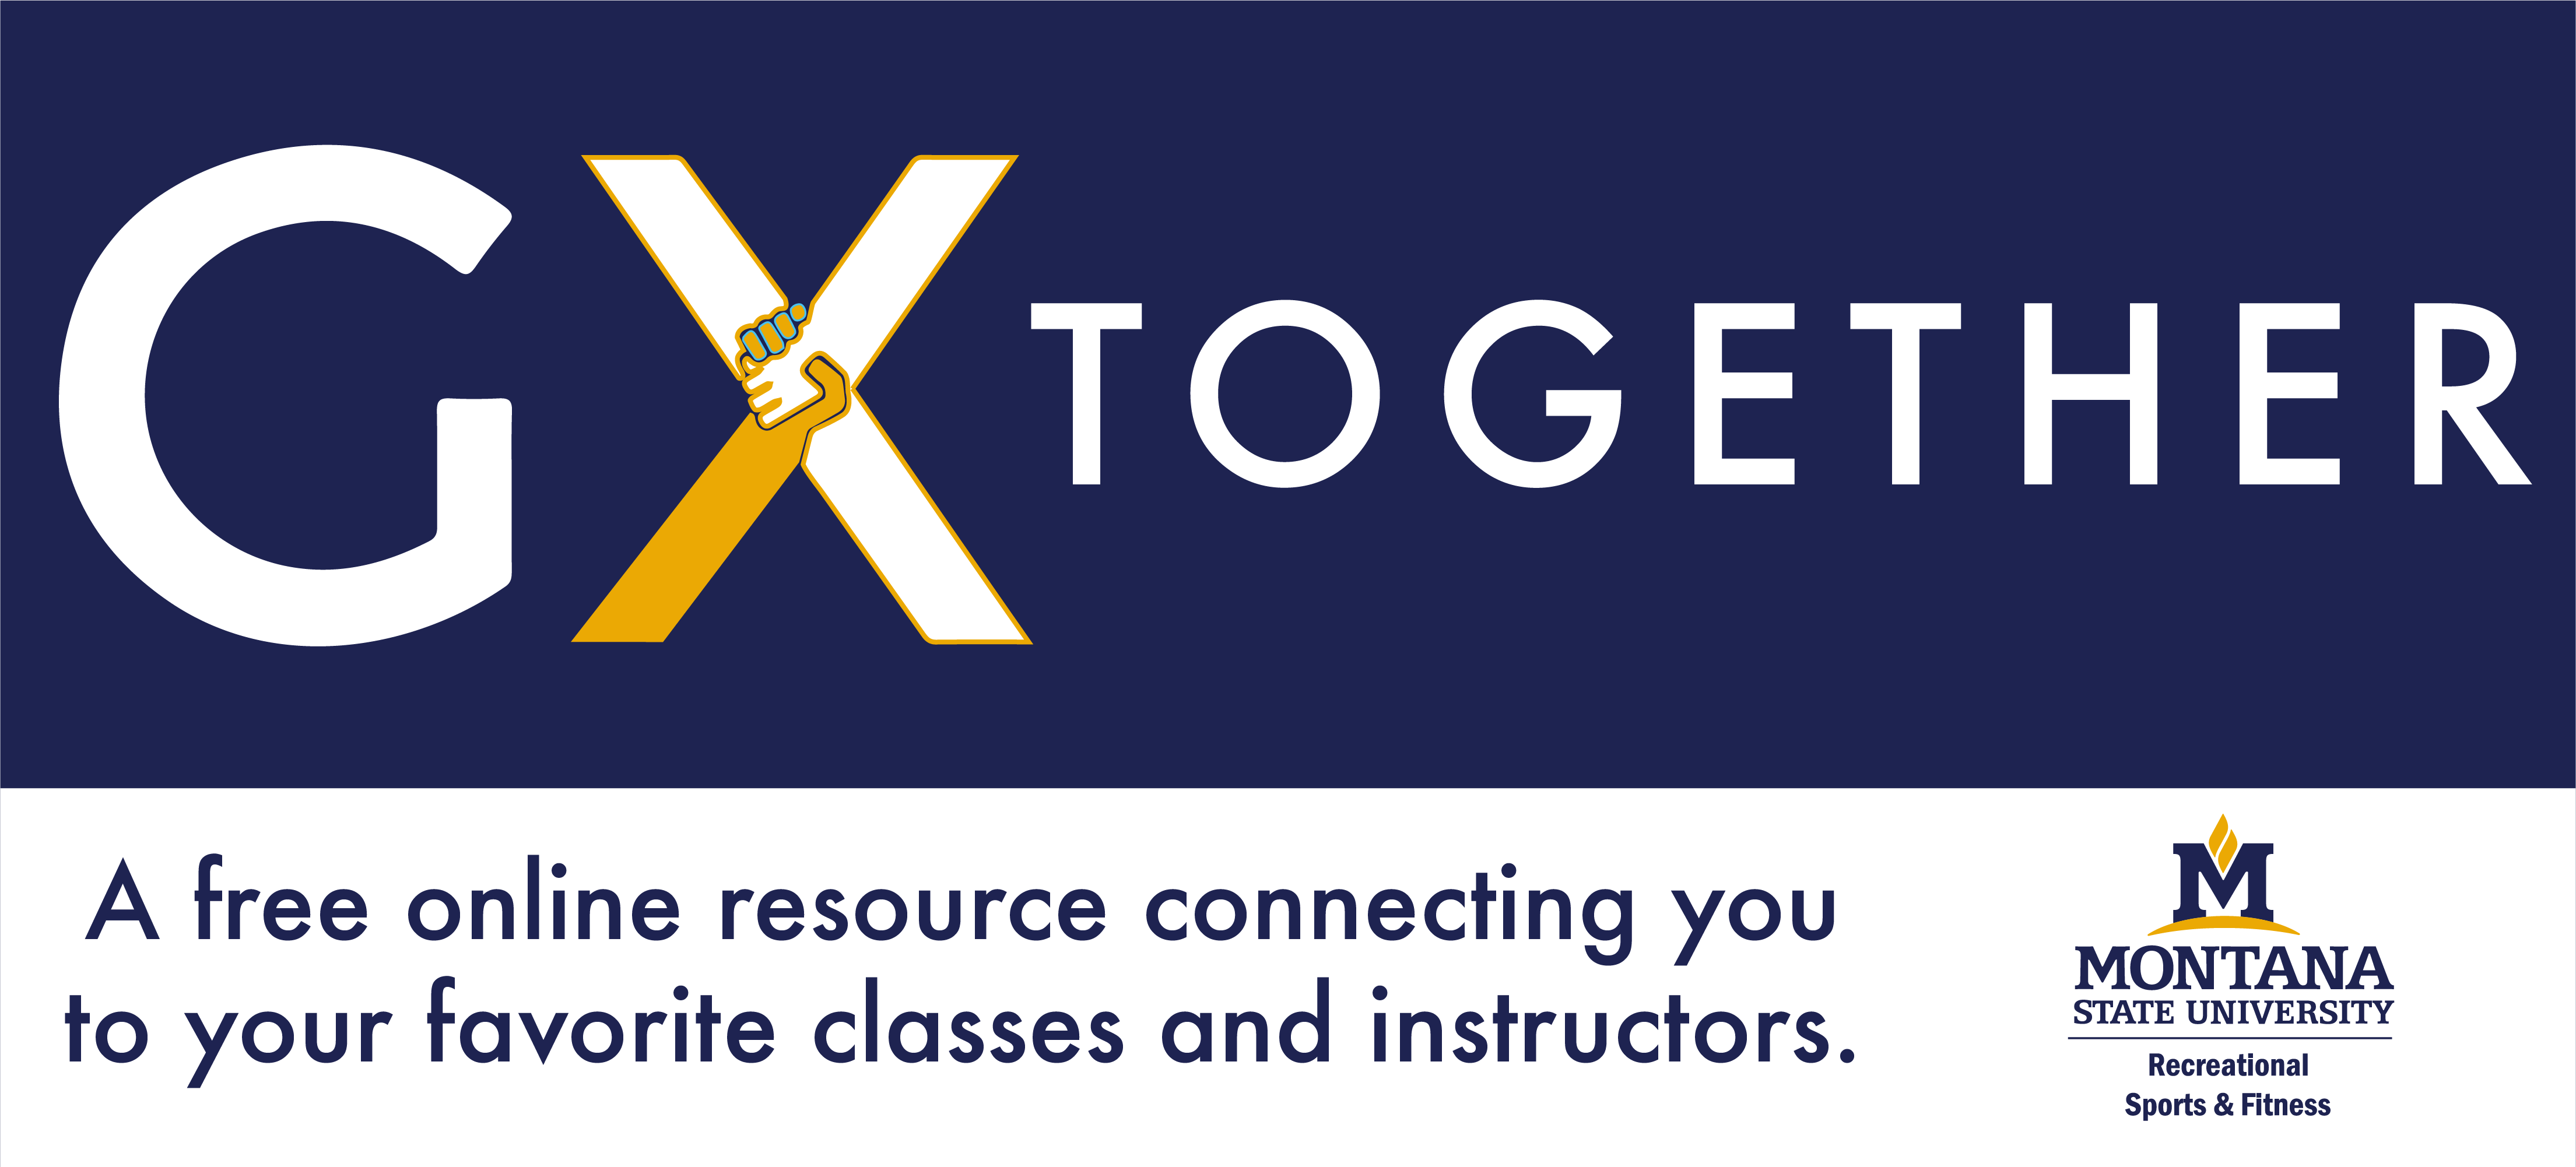 A free online resource connecting you to your favorite classes and instructors.